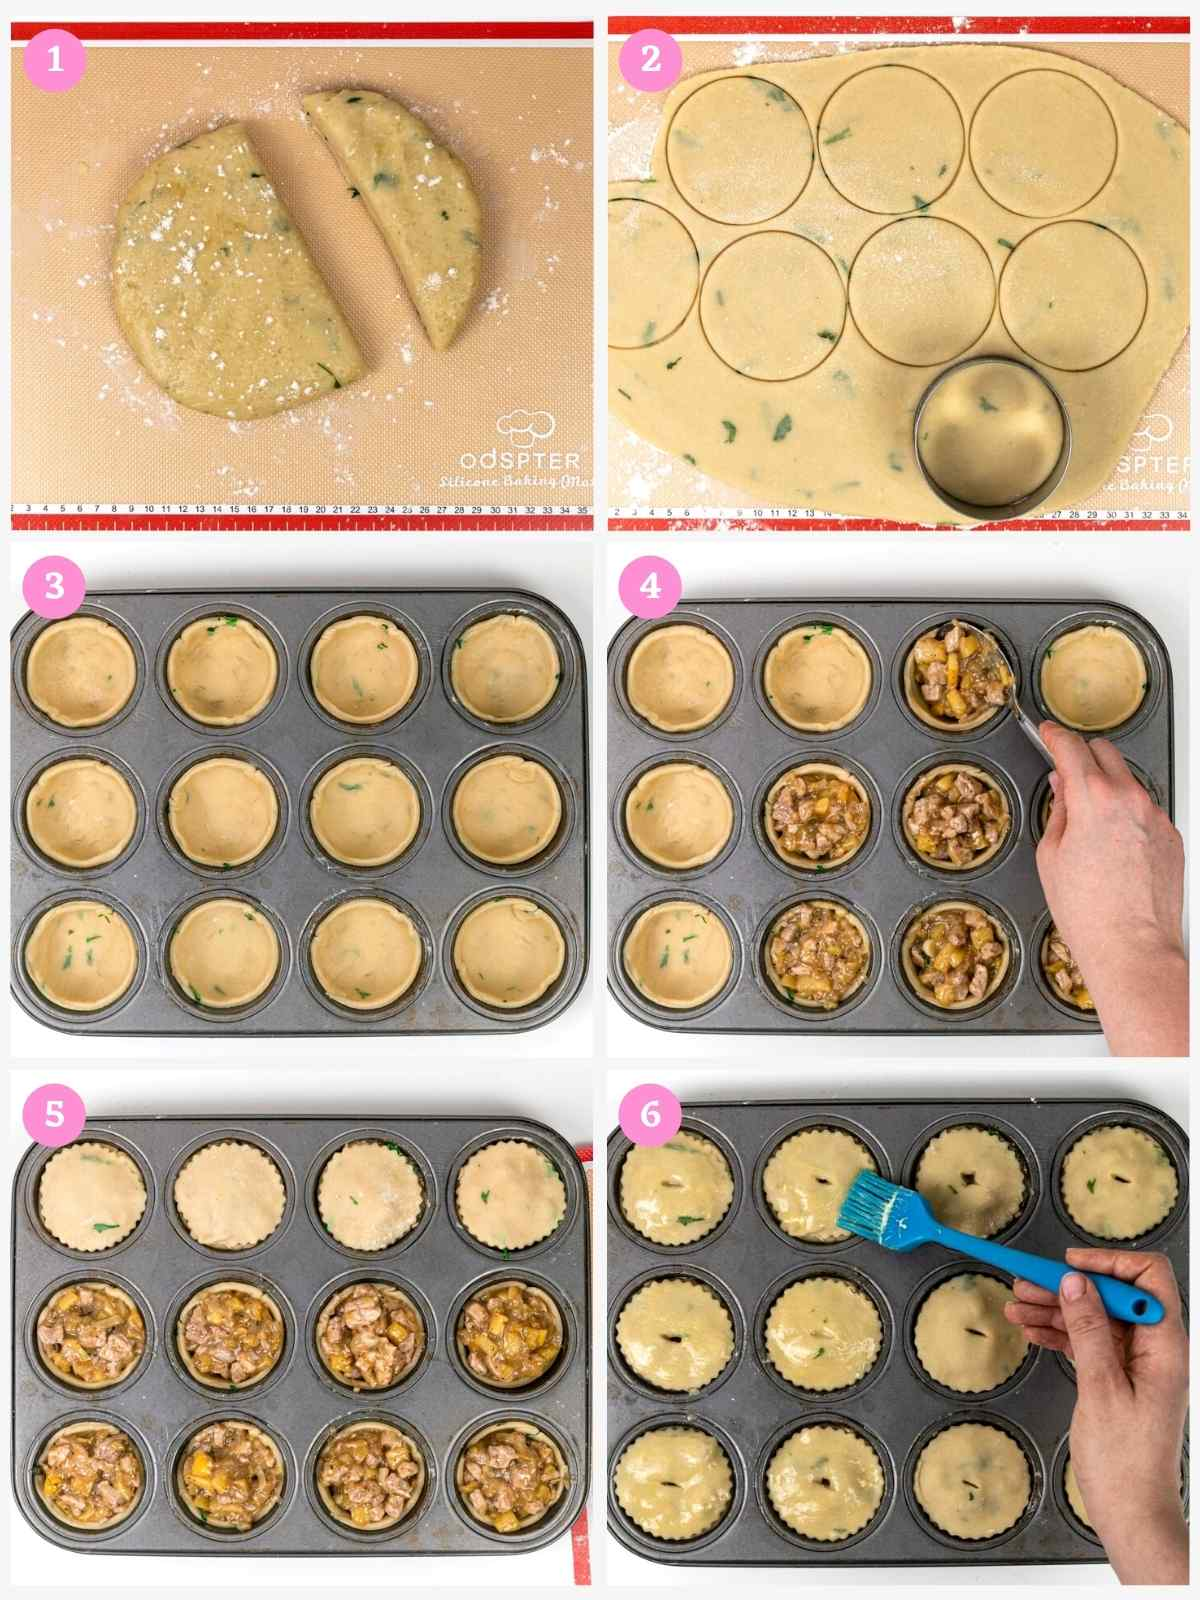 Collage of 6 images showing how to assemble British pork pies